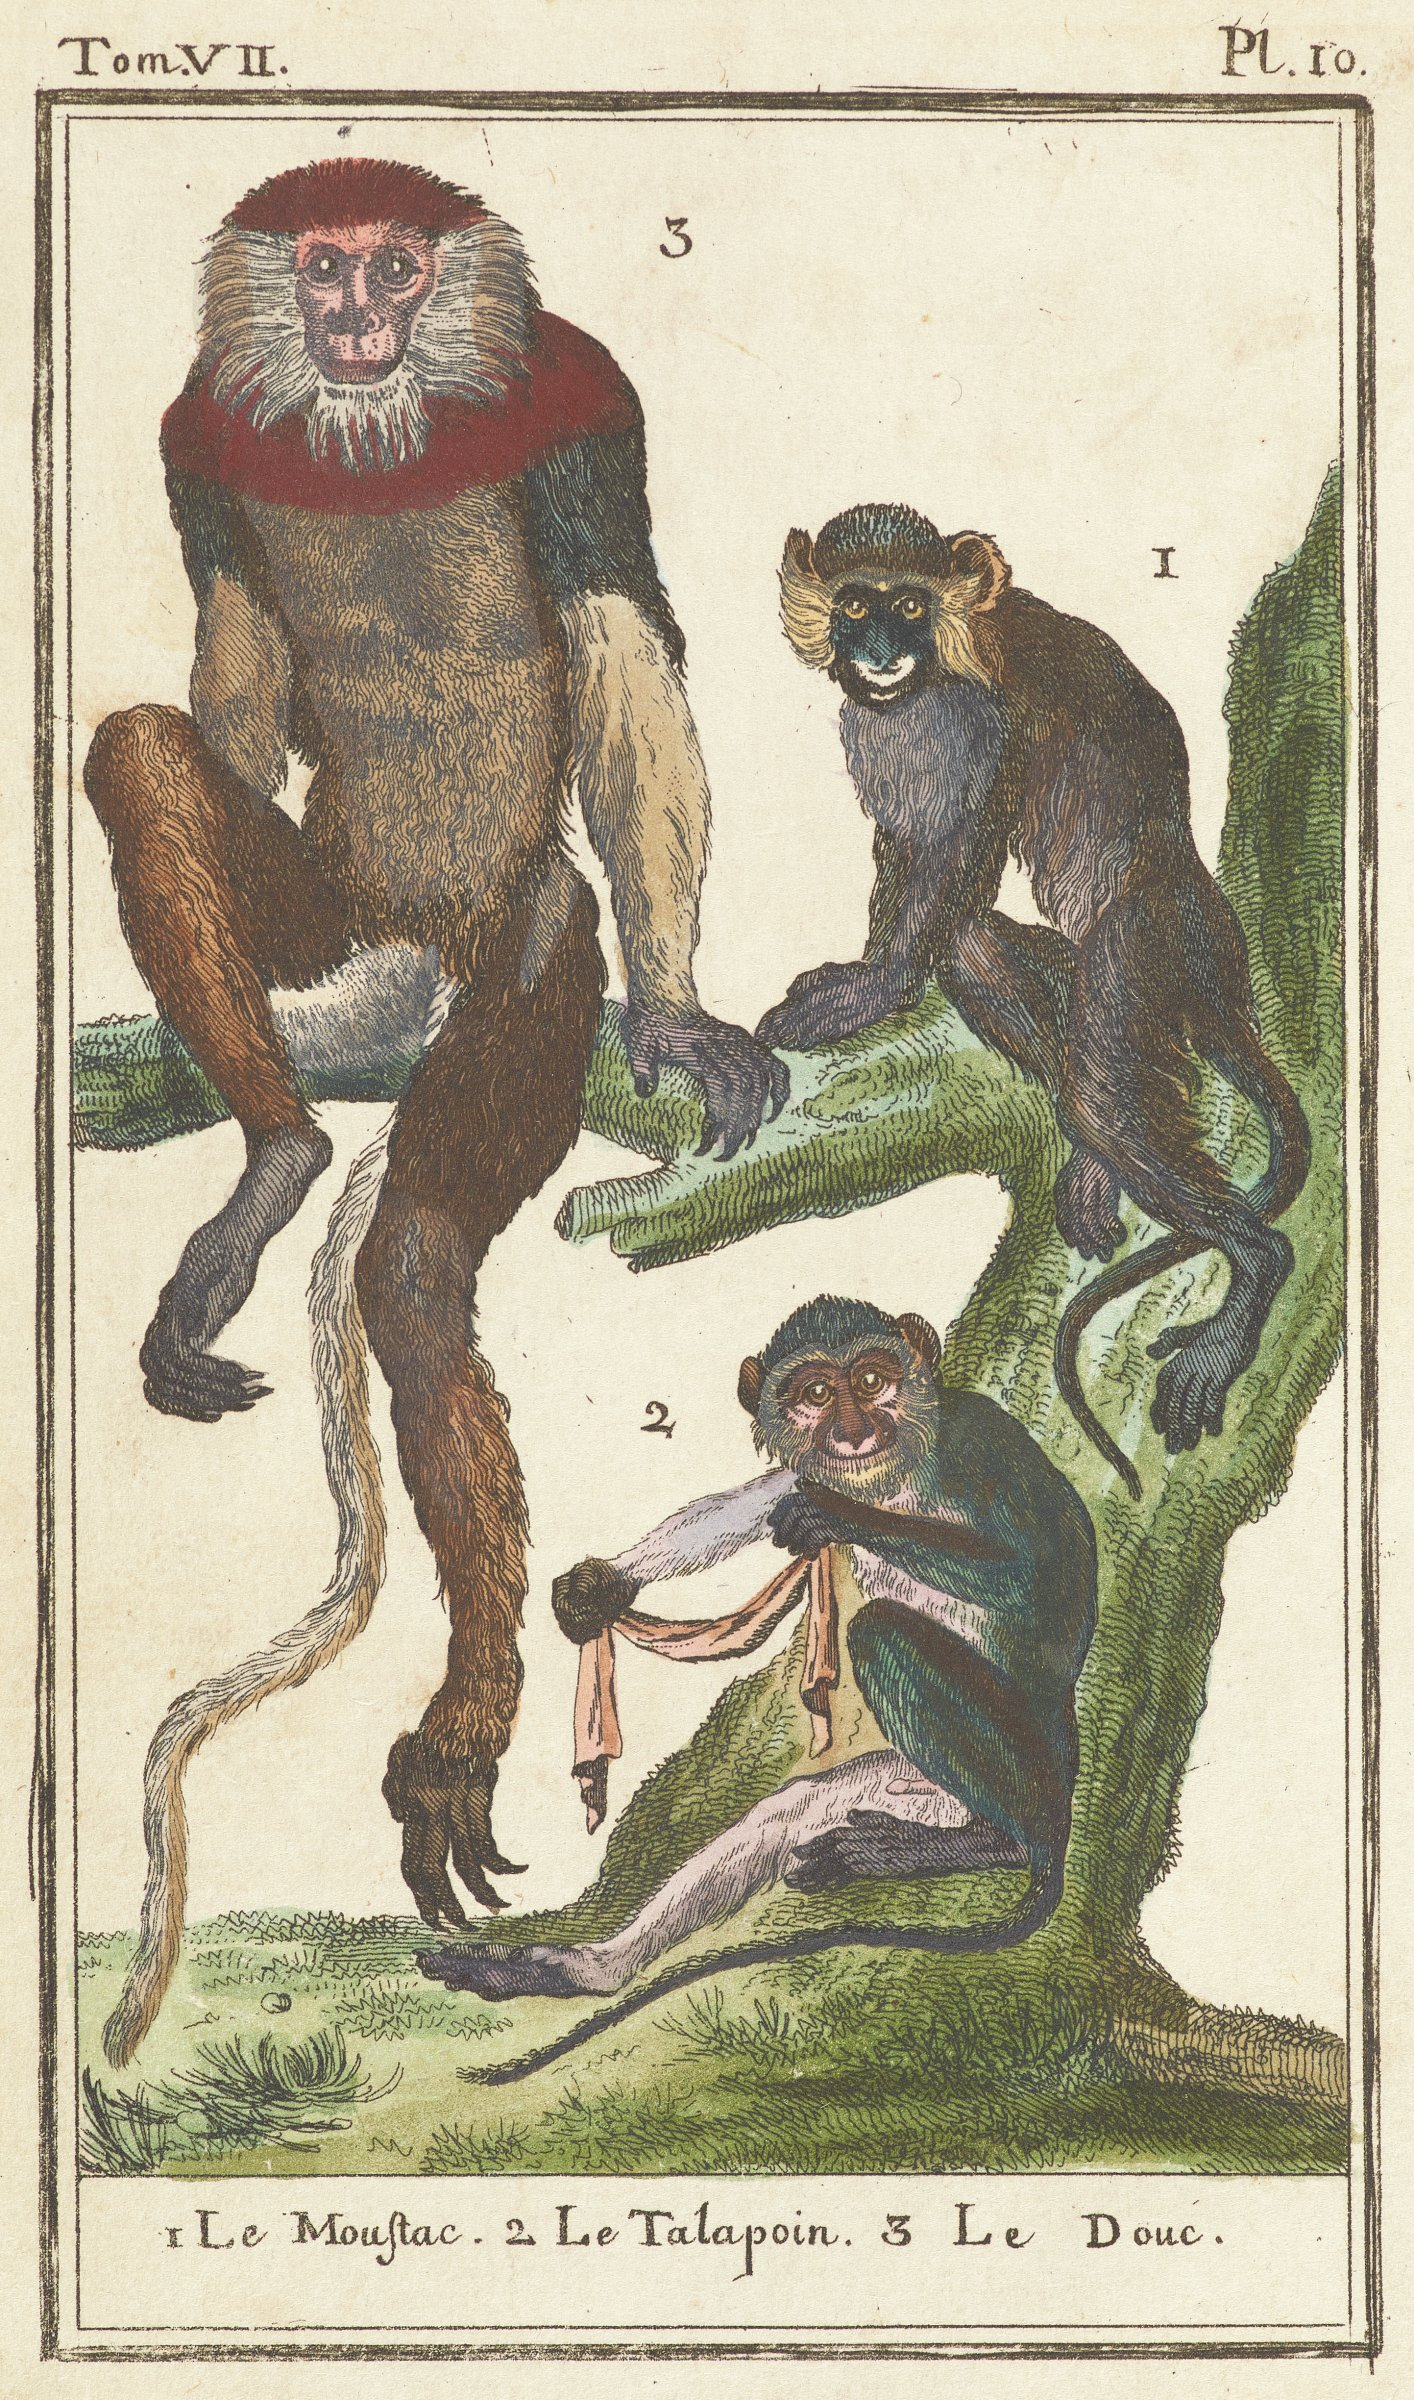 Three different types of monkeys sit on a tree limb and tree trunk facing the viewer.